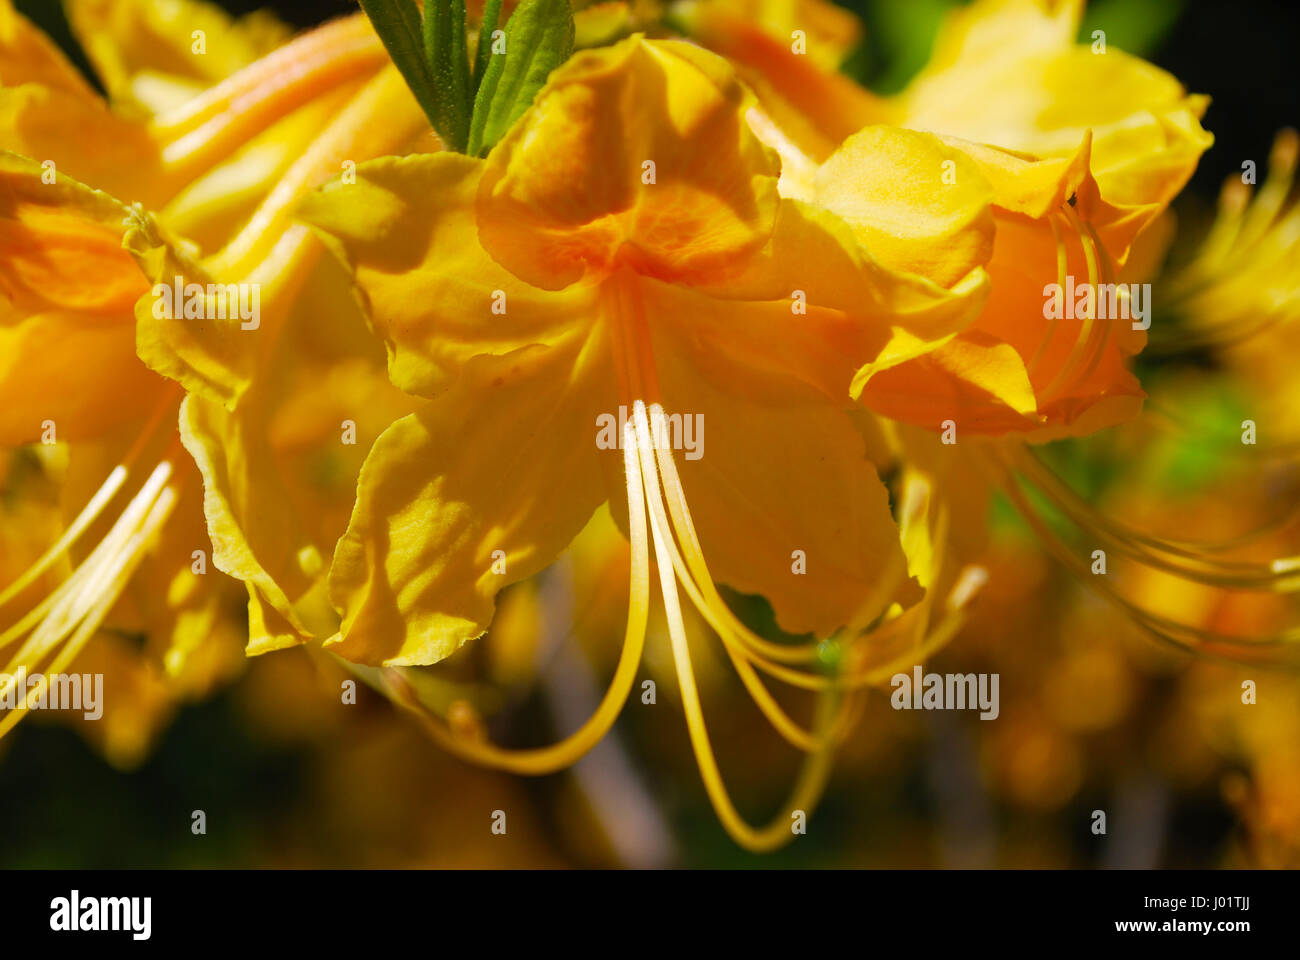 Arbuste Nain Persistant Plein Soleil rhododendron nain jaune banque d'images, photo stock